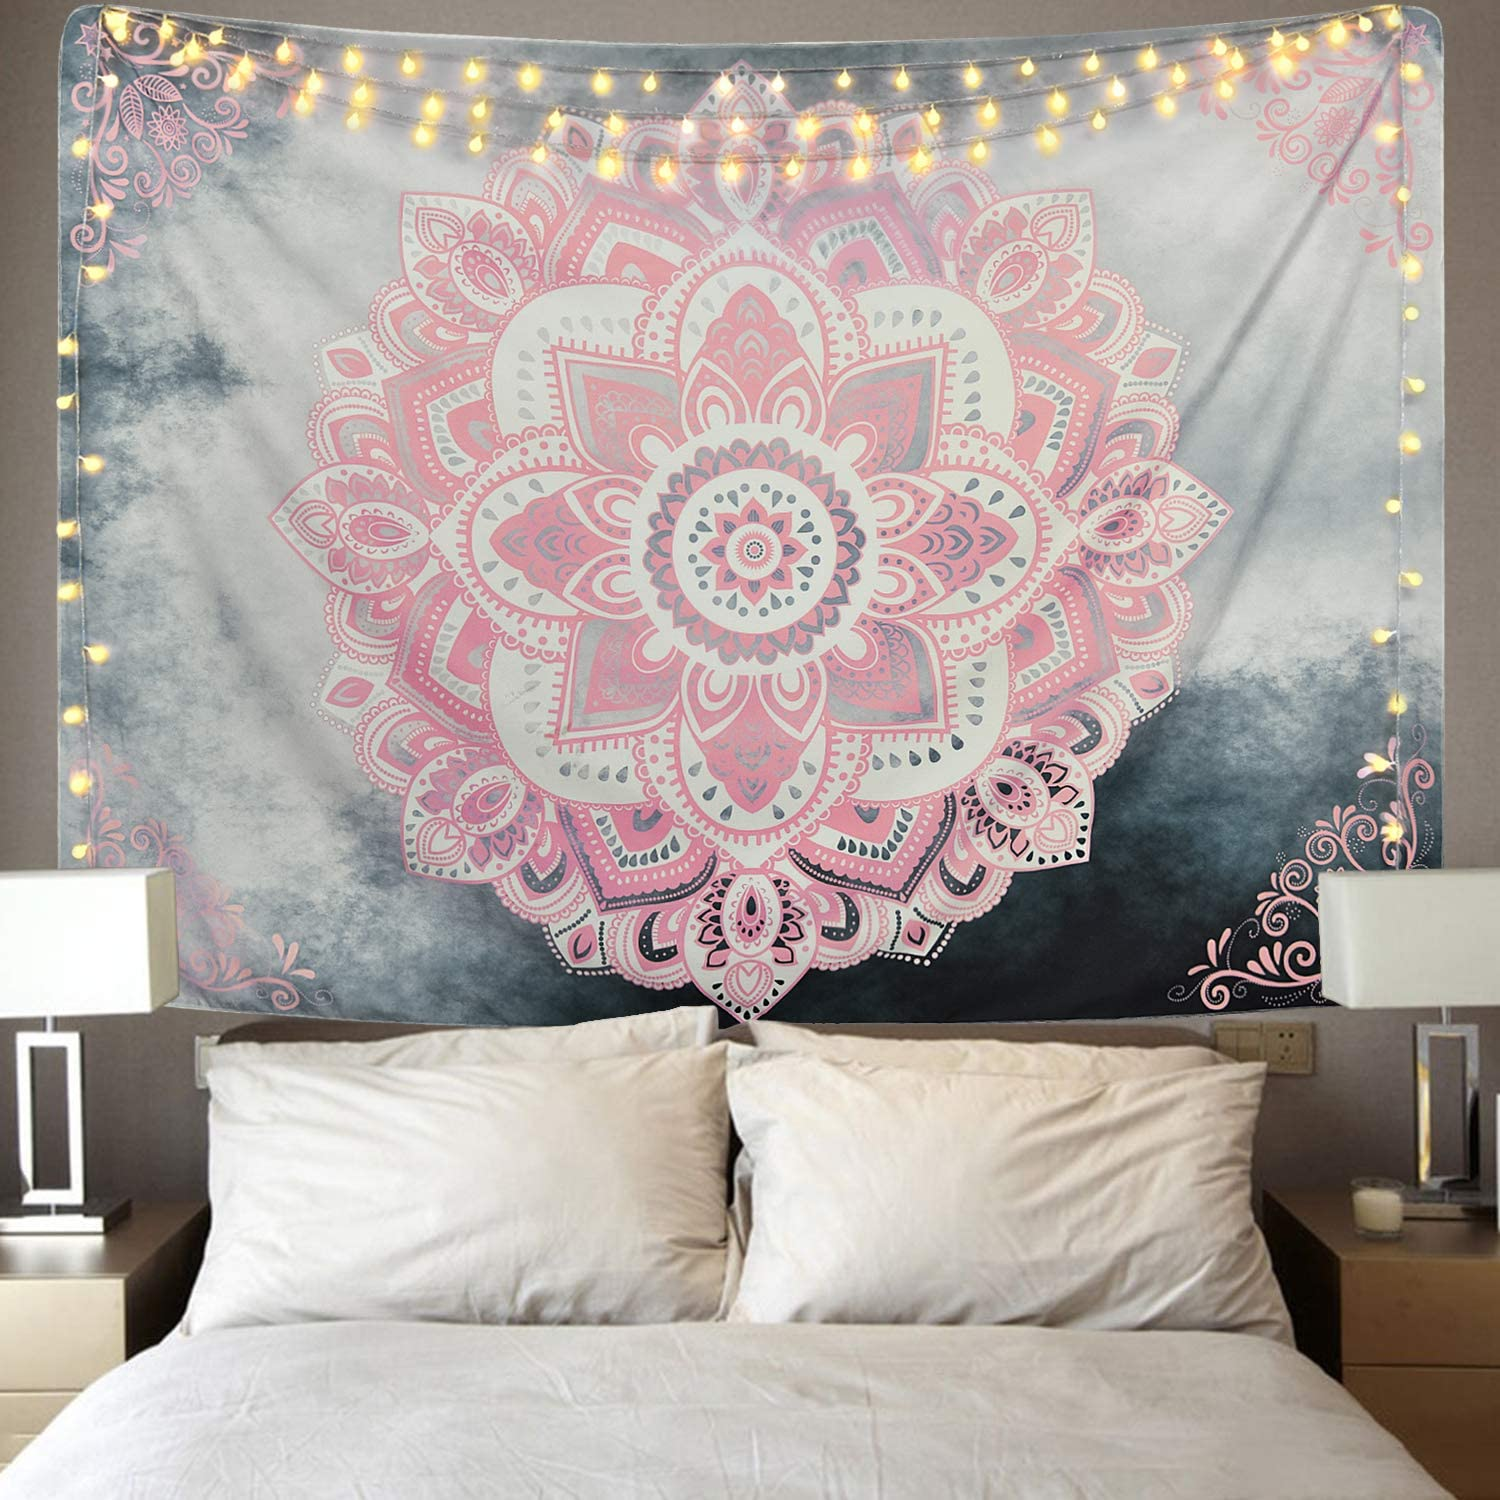 Amazon Com Sevenstars Pink Mandala Tapestry Bohemian Tapestries Hippie Tapestry Floral Medallion Tapestry For Bedroom Home Kitchen